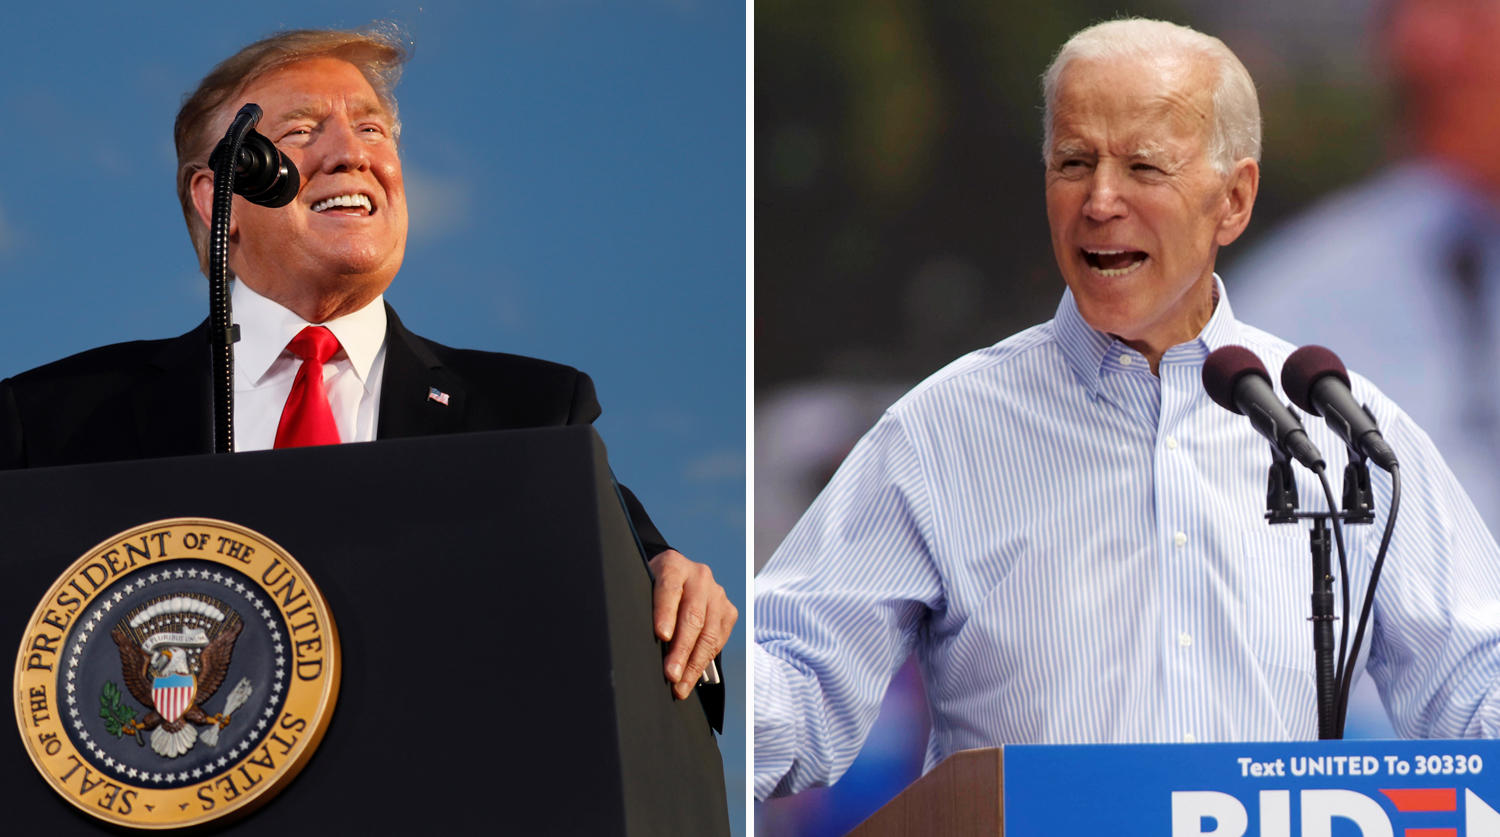 I'm ready to debate with Trump - Biden